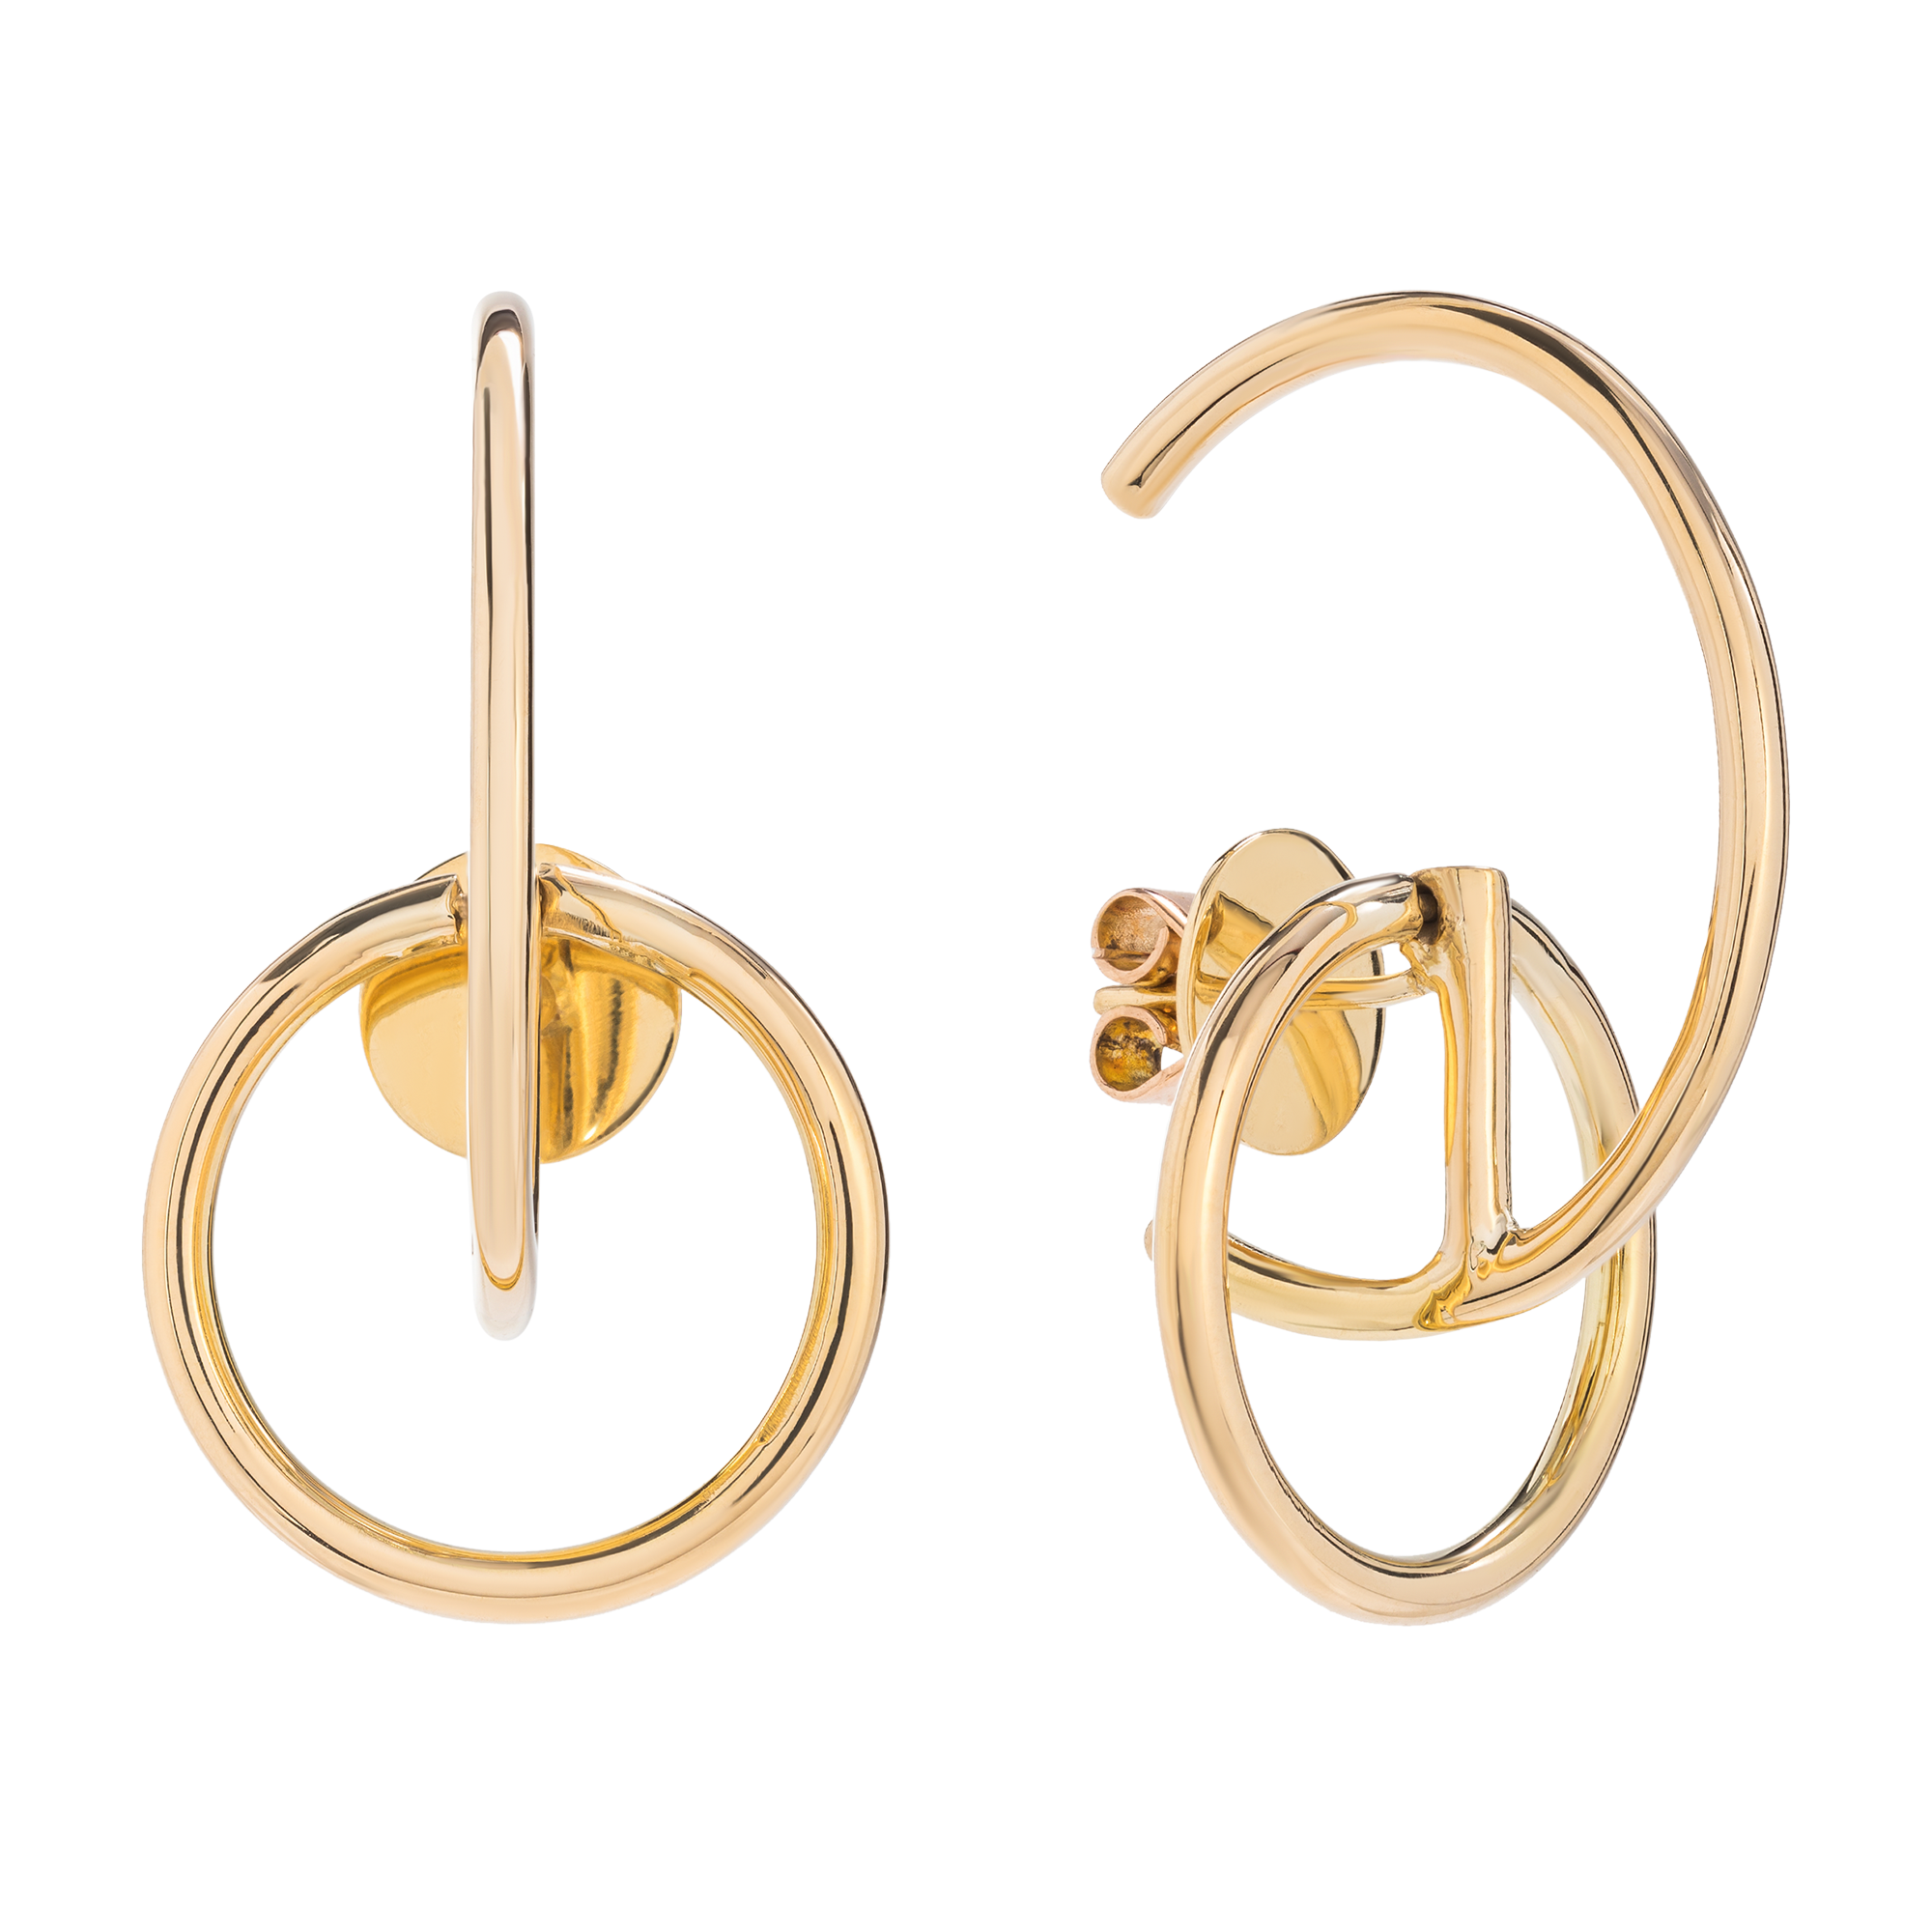 Hoops earrings product image